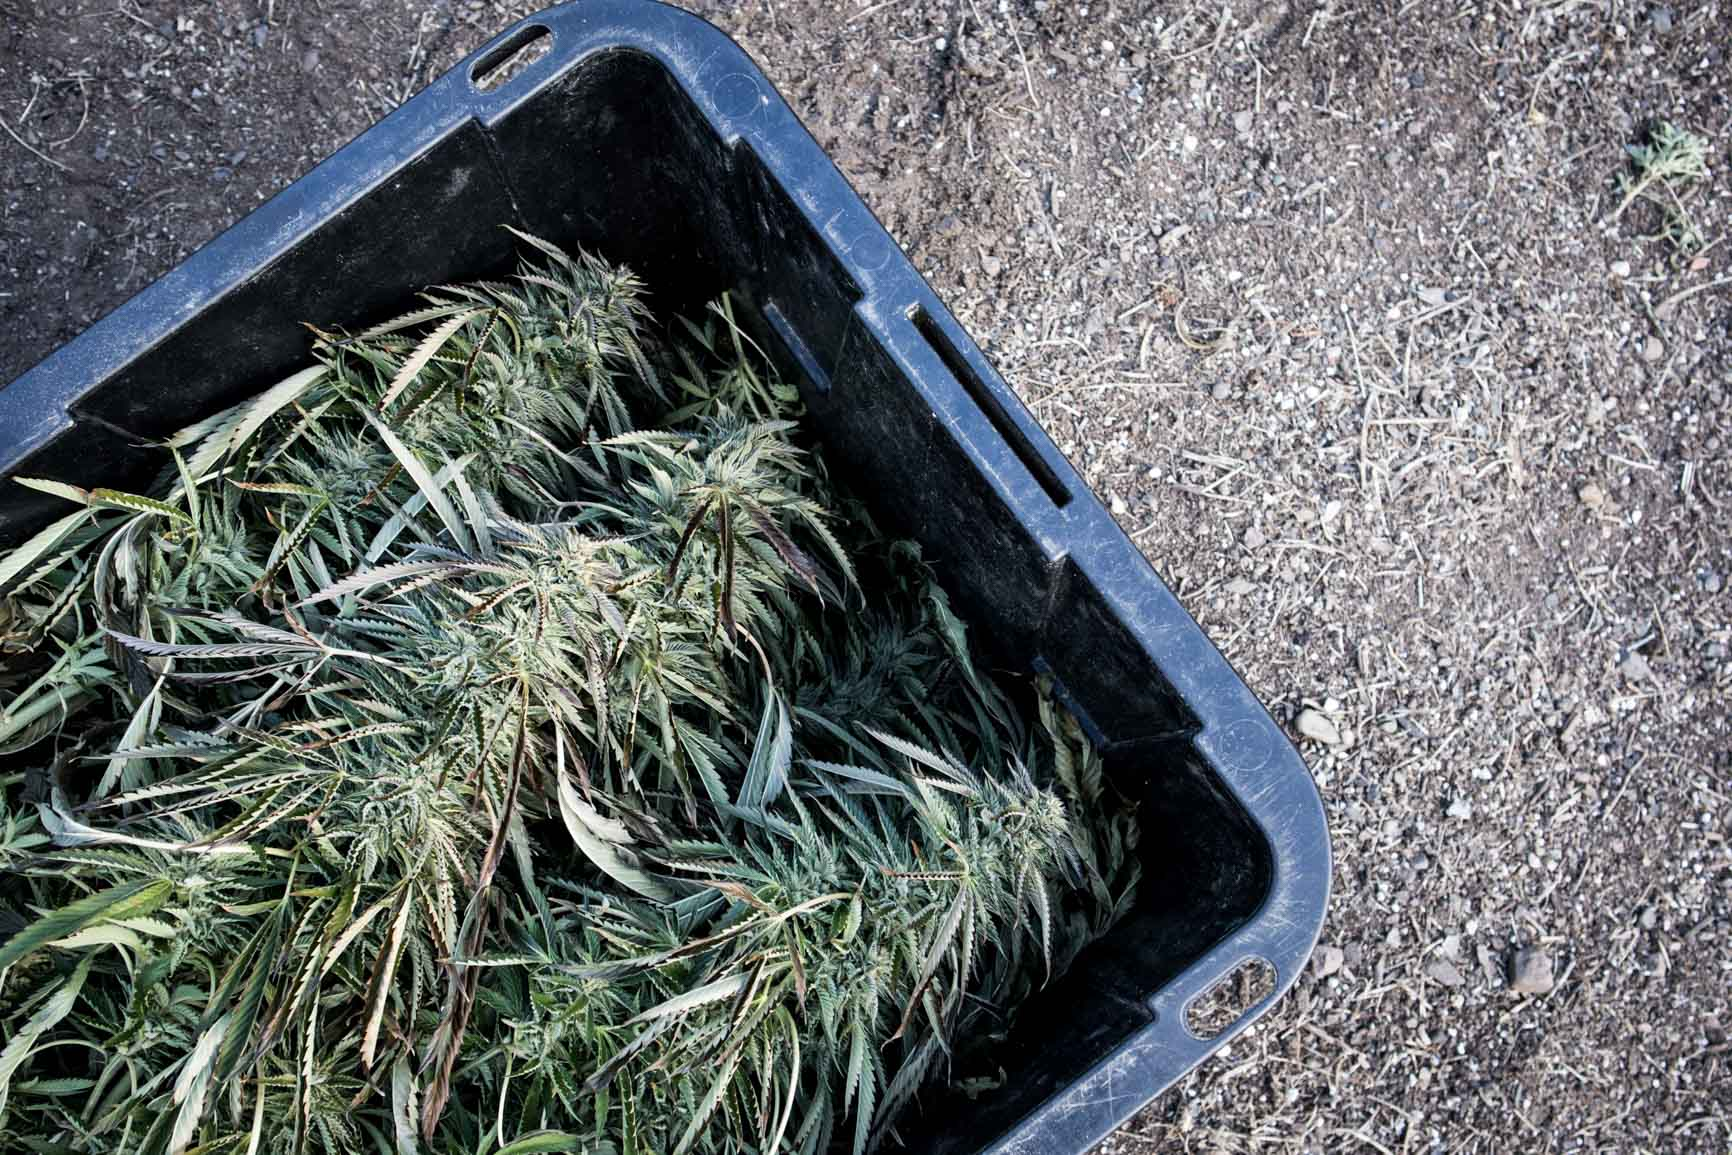 Bucket of hemp plants